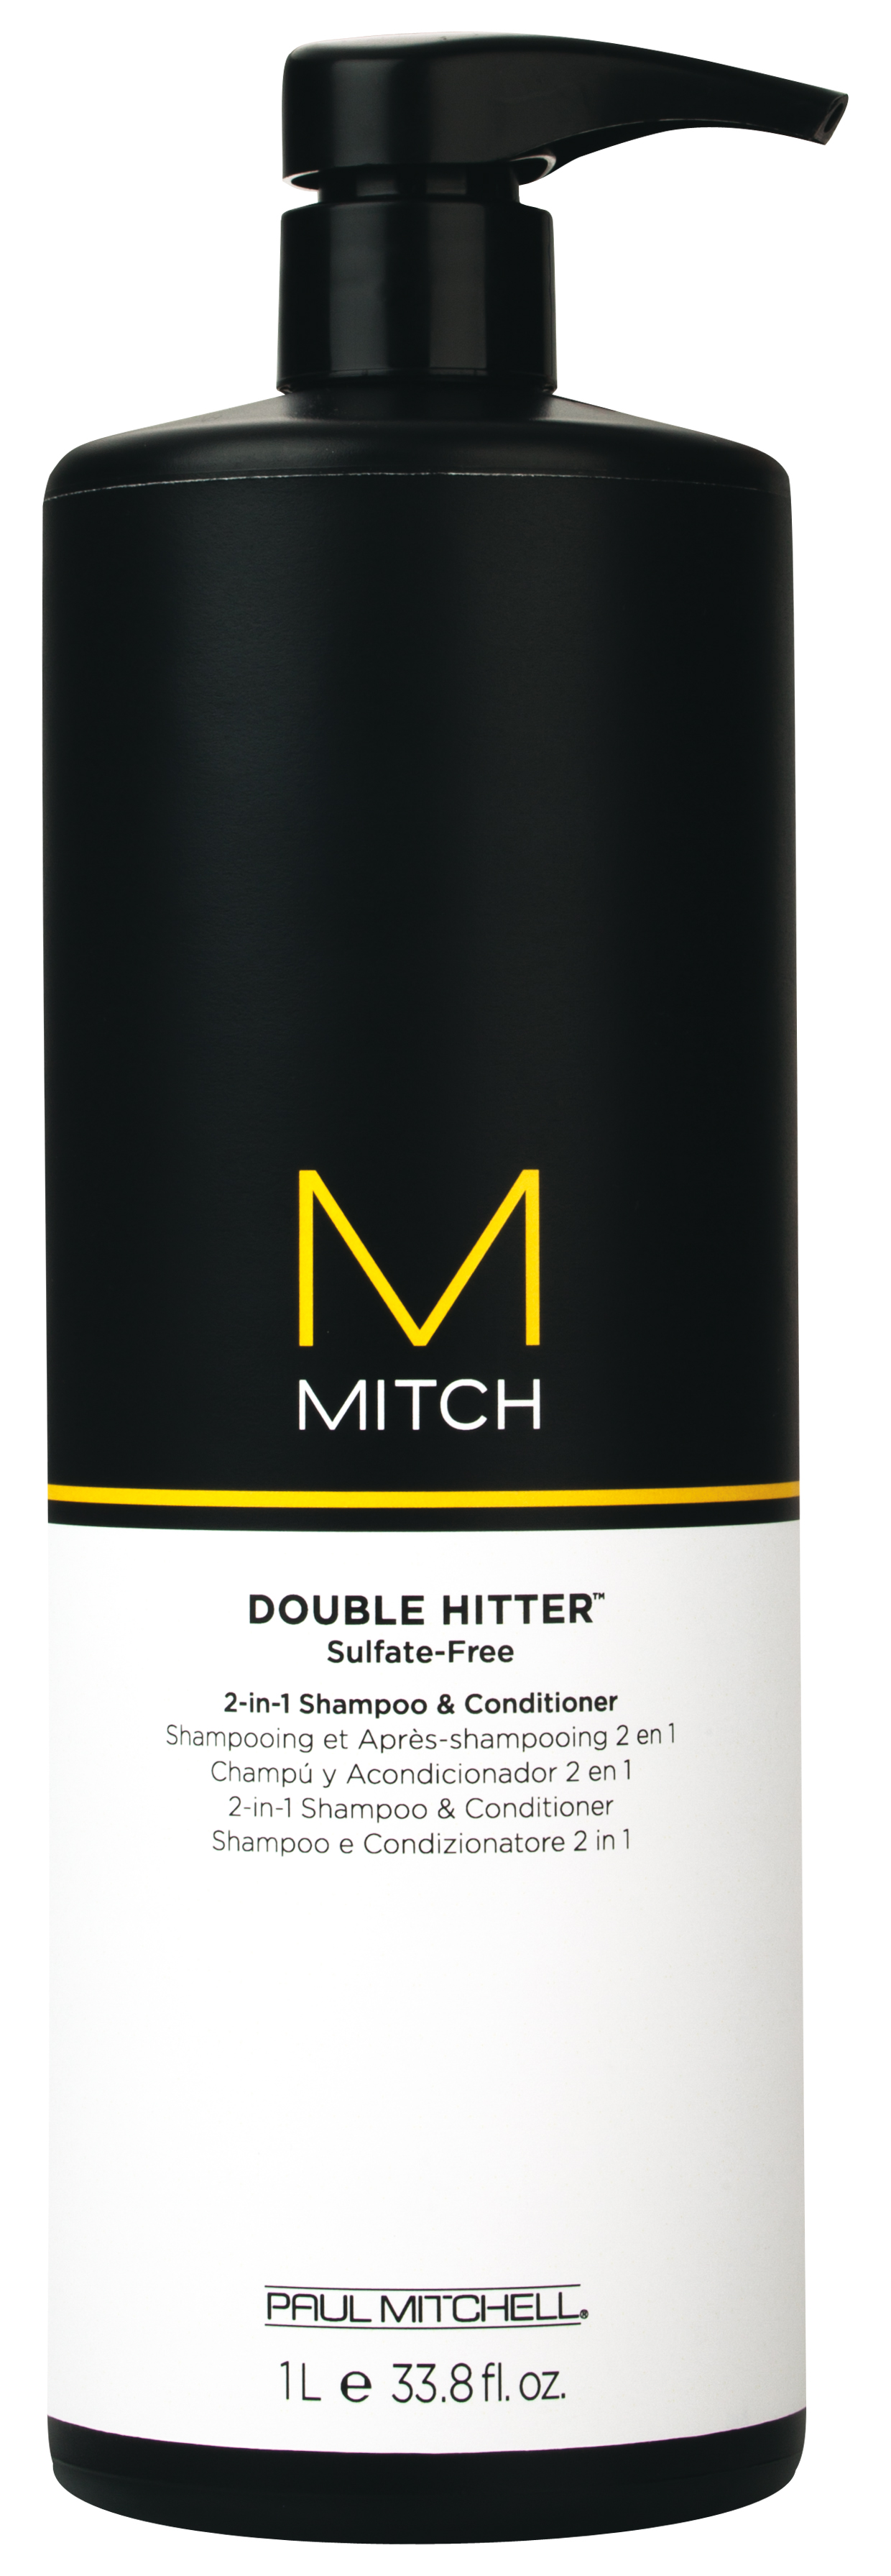 Mitch Double Hitter